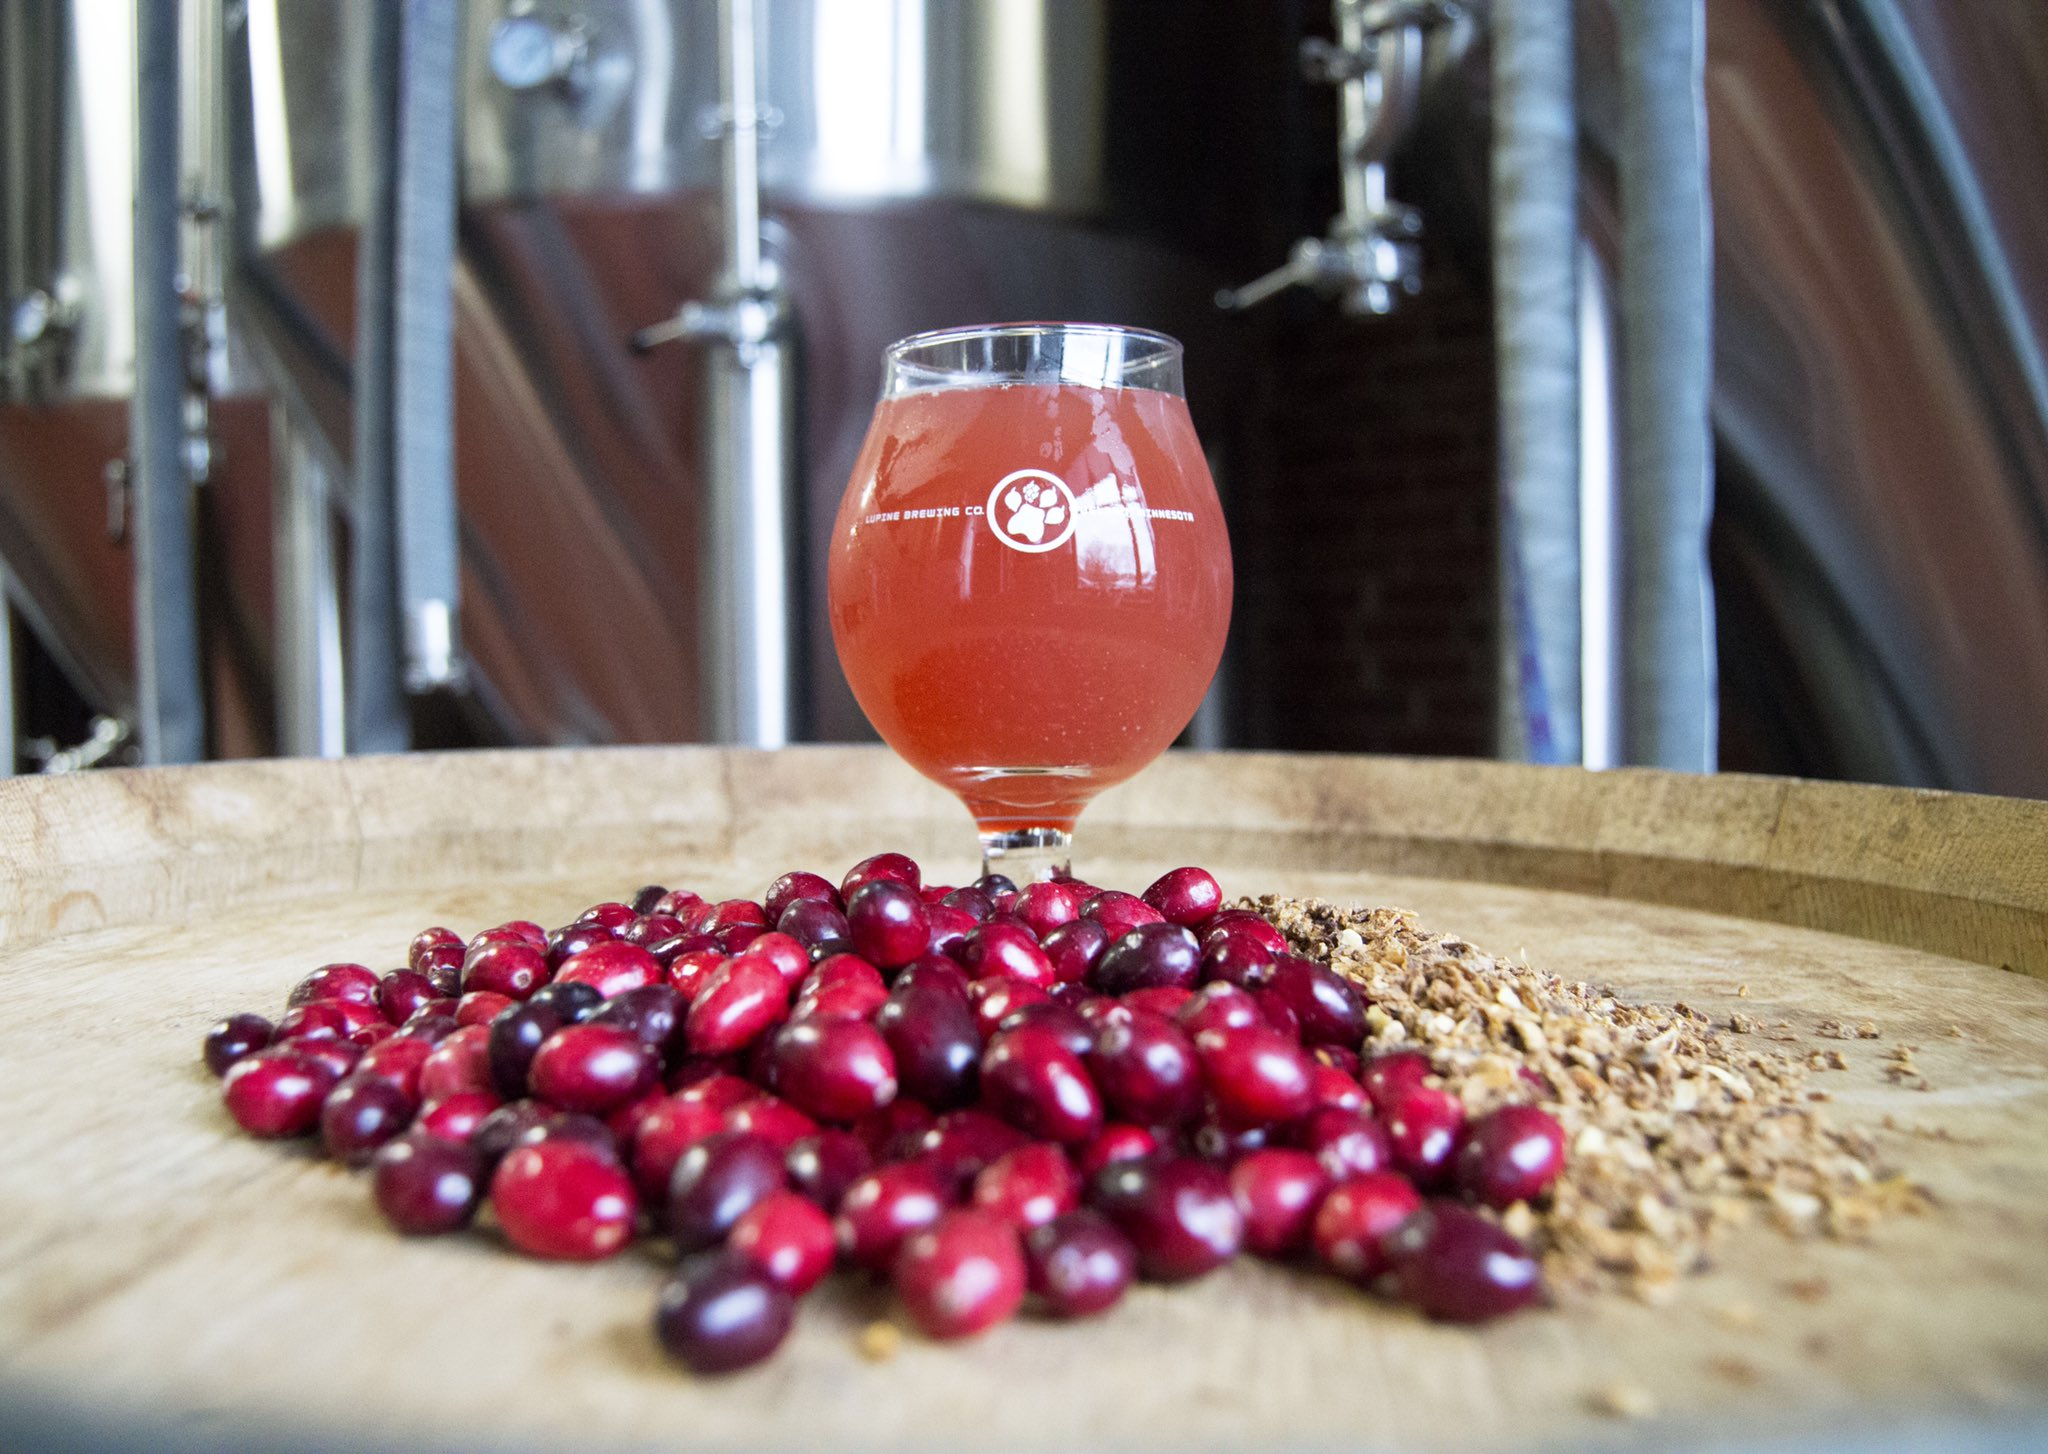 Lupine Cranberry Sour Meower • Photo via Lupine Brewing